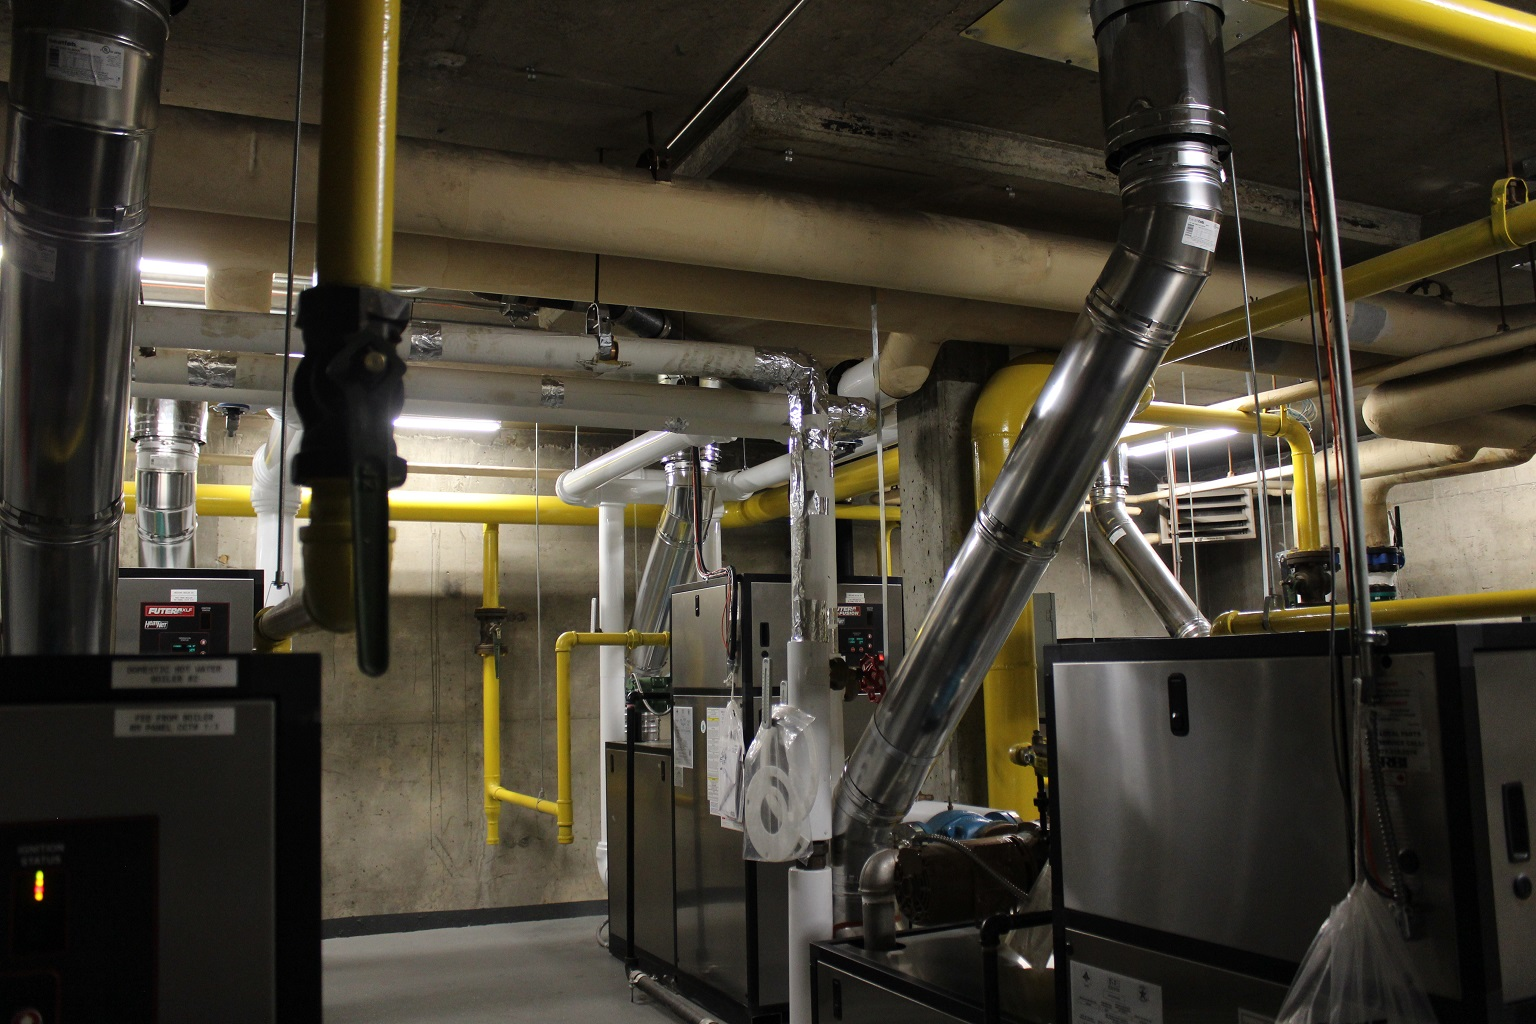 Parity Multi Residential Boiler Rooms Like This Will Need To Be Connected And Controlled To Leverage AI